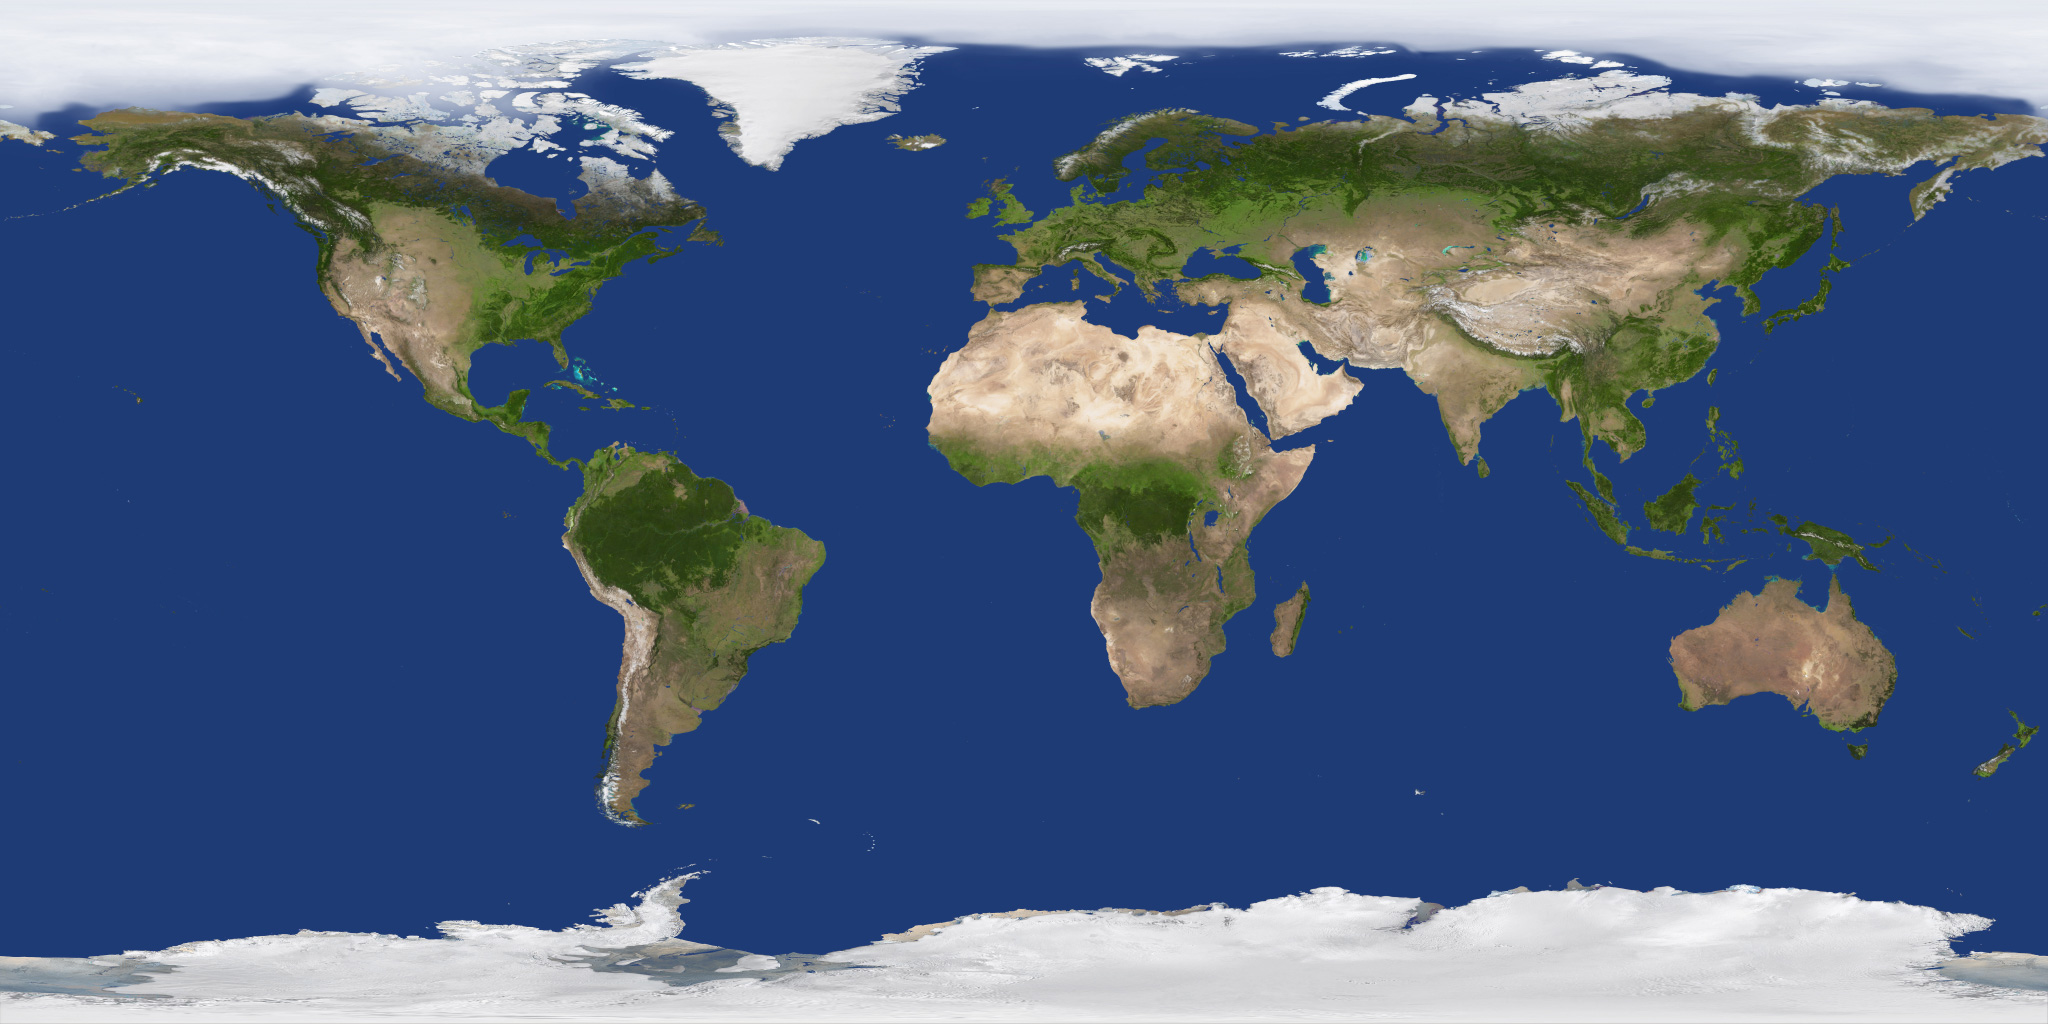 Solar textures solar system scope earth day map high resolution download gumiabroncs Choice Image